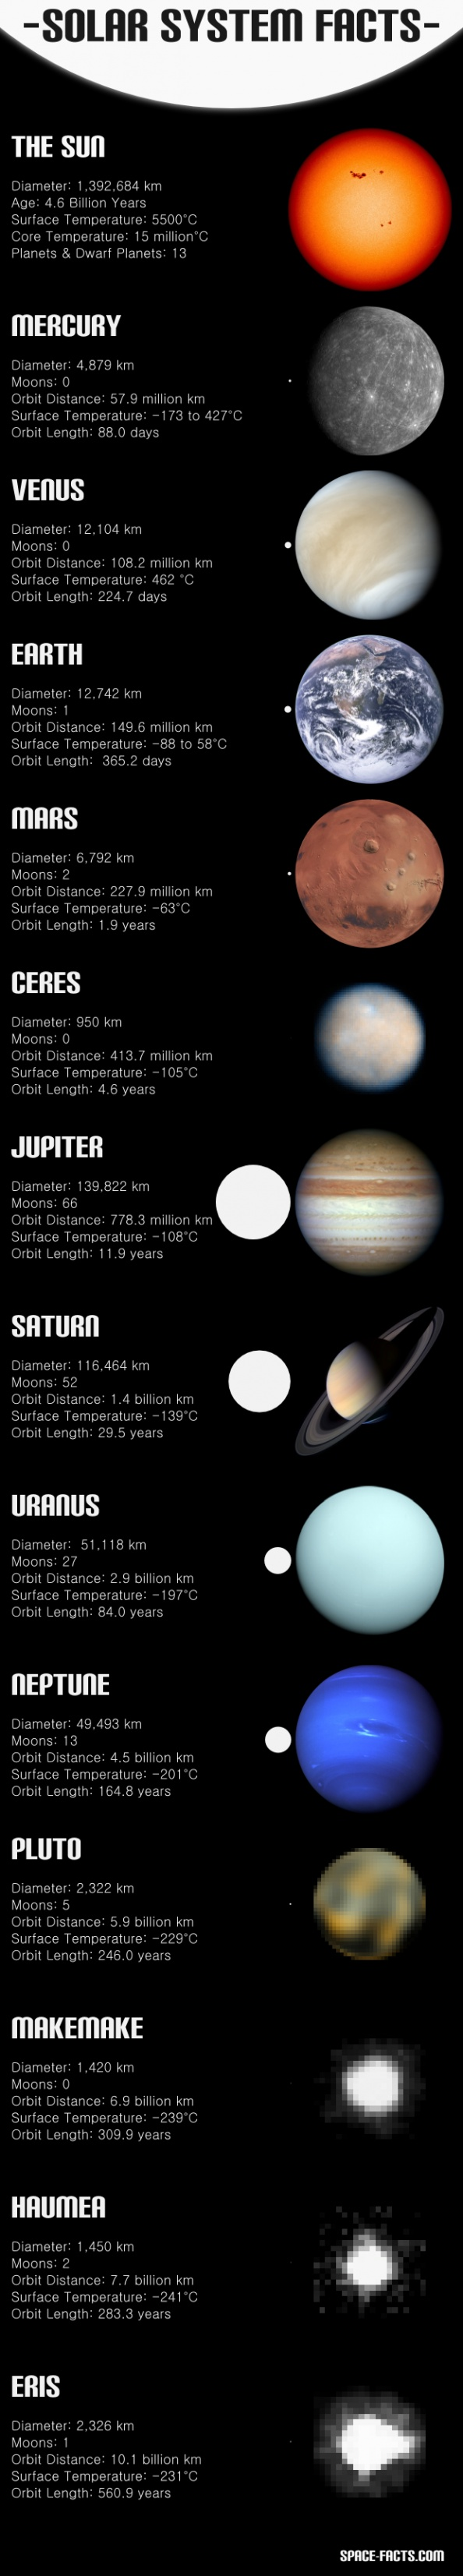 Solar System Facts - #Infographic   Infographic - Food ...